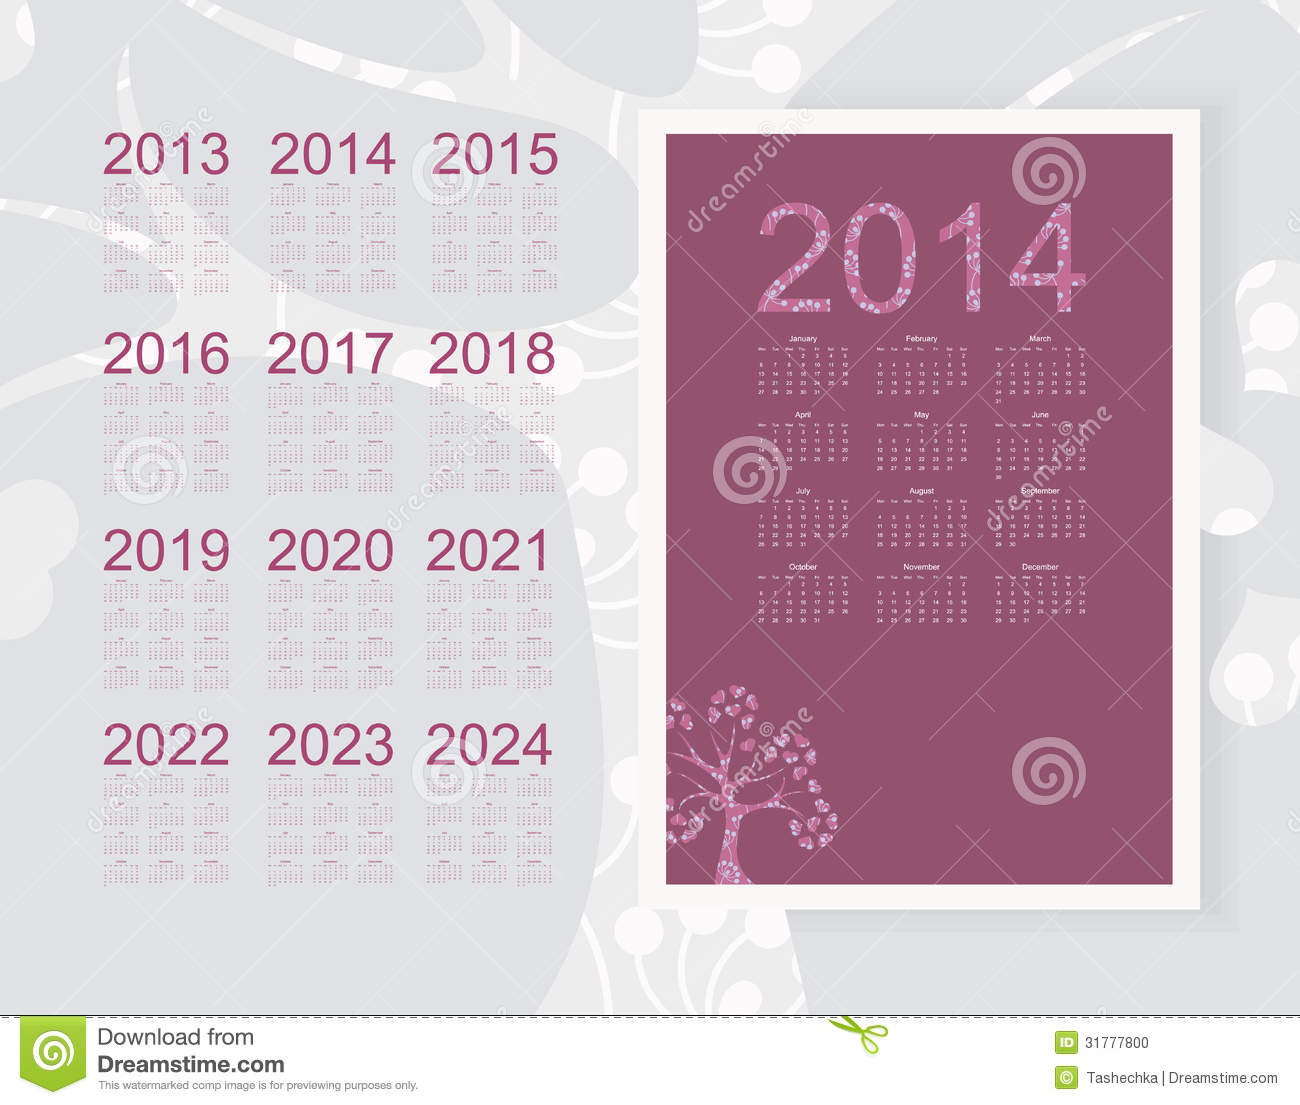 2013 And 2014 And 2020 Calendar Calendar 2014 stock vector. Illustration of 2022, 2016   31777800